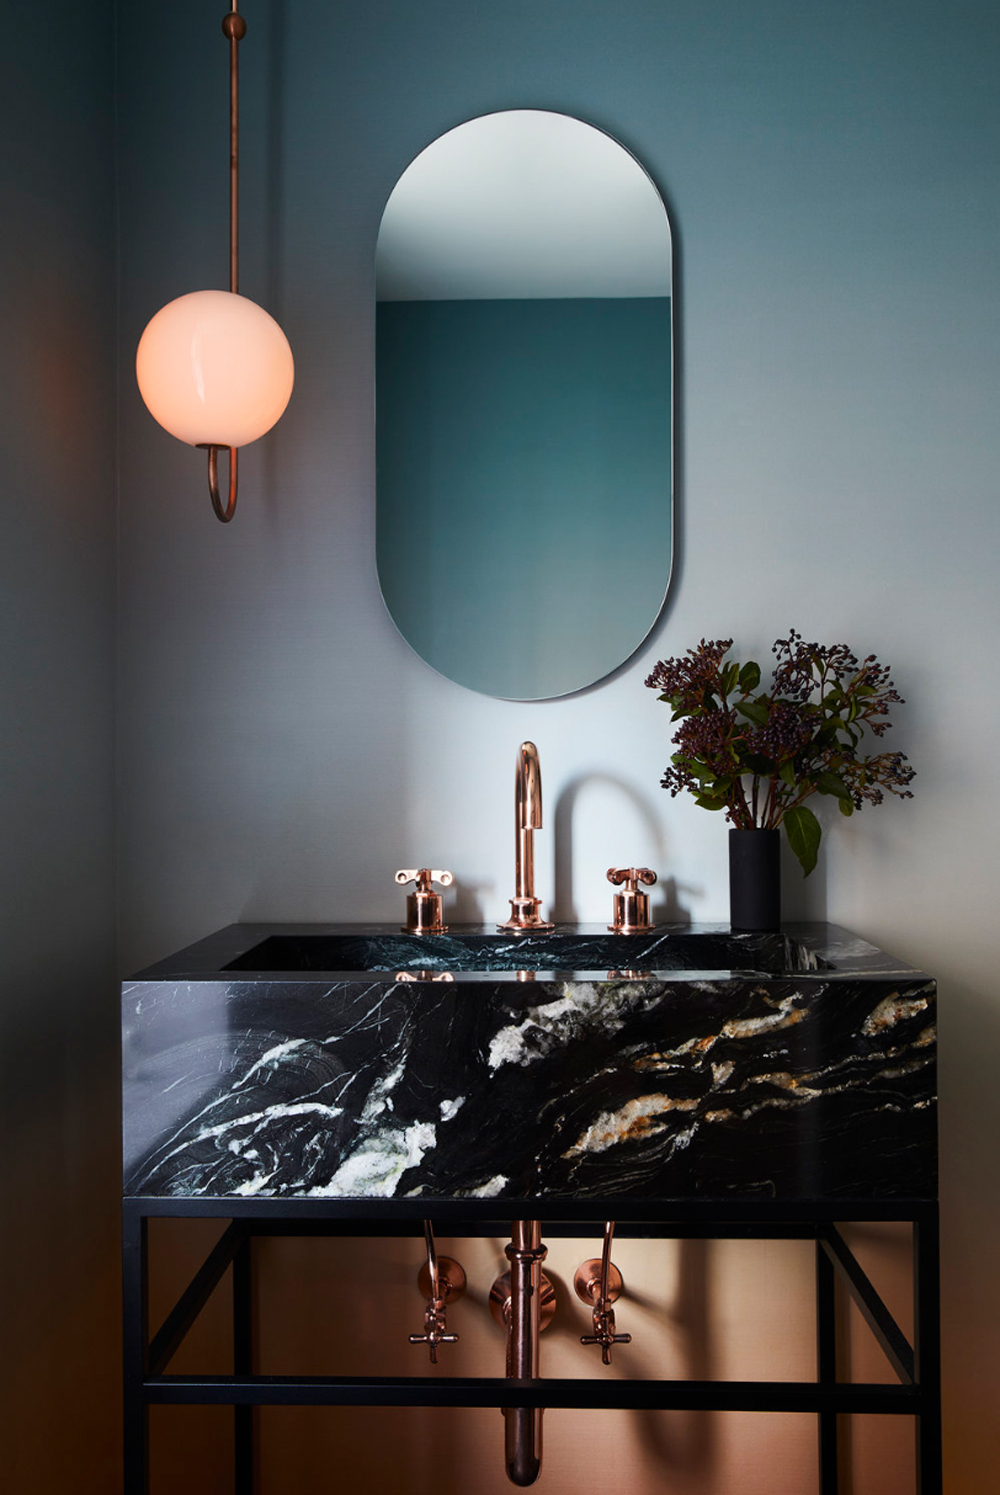 Powder room with ombre wallpaper and marble basin on stand - Space Exploration Design || 15 small cloakrooms / powder rooms that are big on style - FIRST SENSE